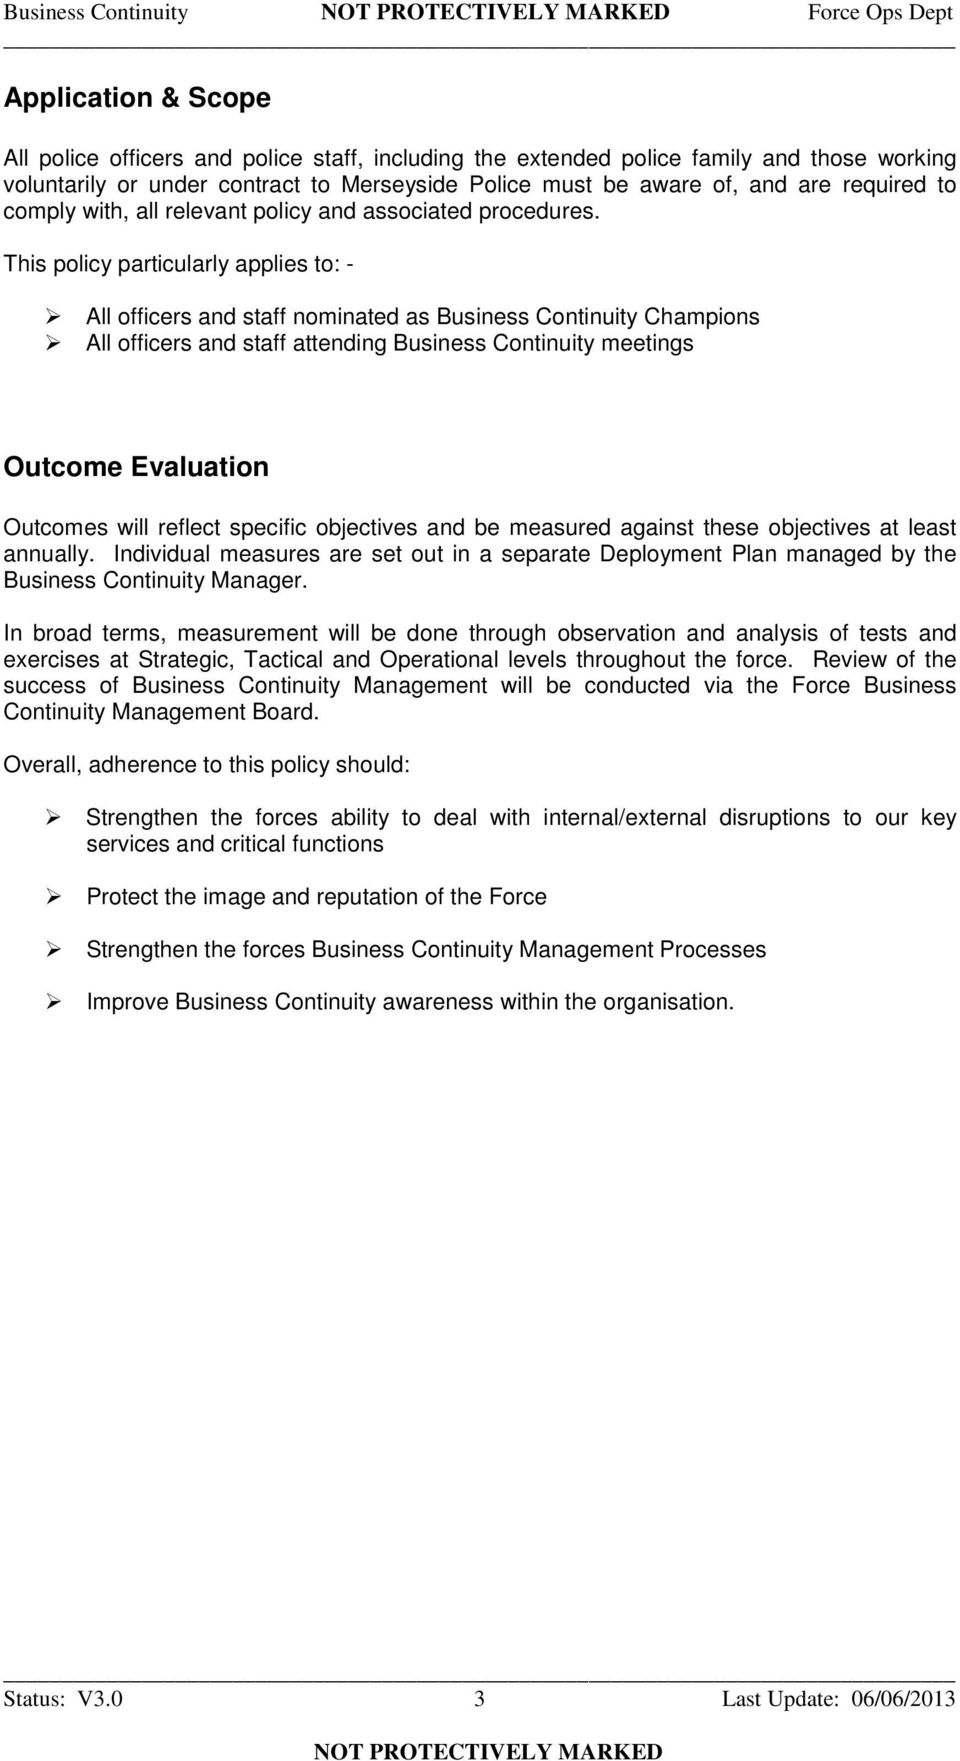 This policy particularly applies to: - All officers and staff nominated as Business Continuity Champions All officers and staff attending Business Continuity meetings Outcome Evaluation Outcomes will